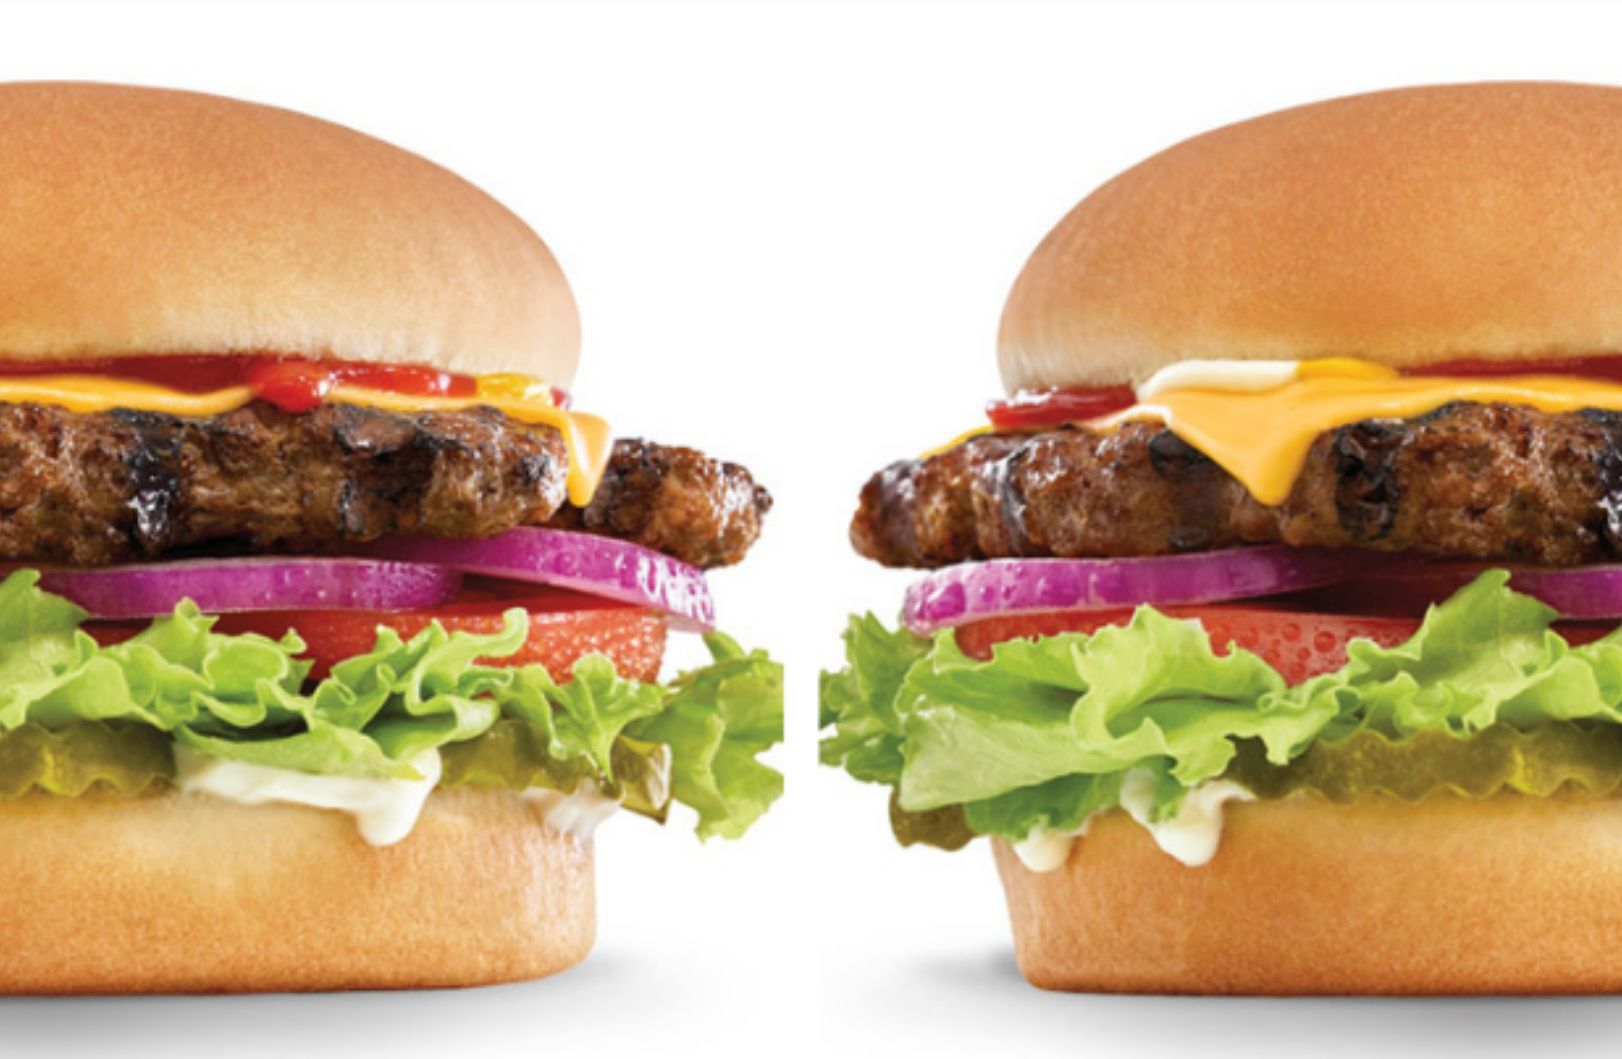 Carl's Jr. Sends E-Club Members a 2 for $7 Original Angus Thickburger Coupon Code